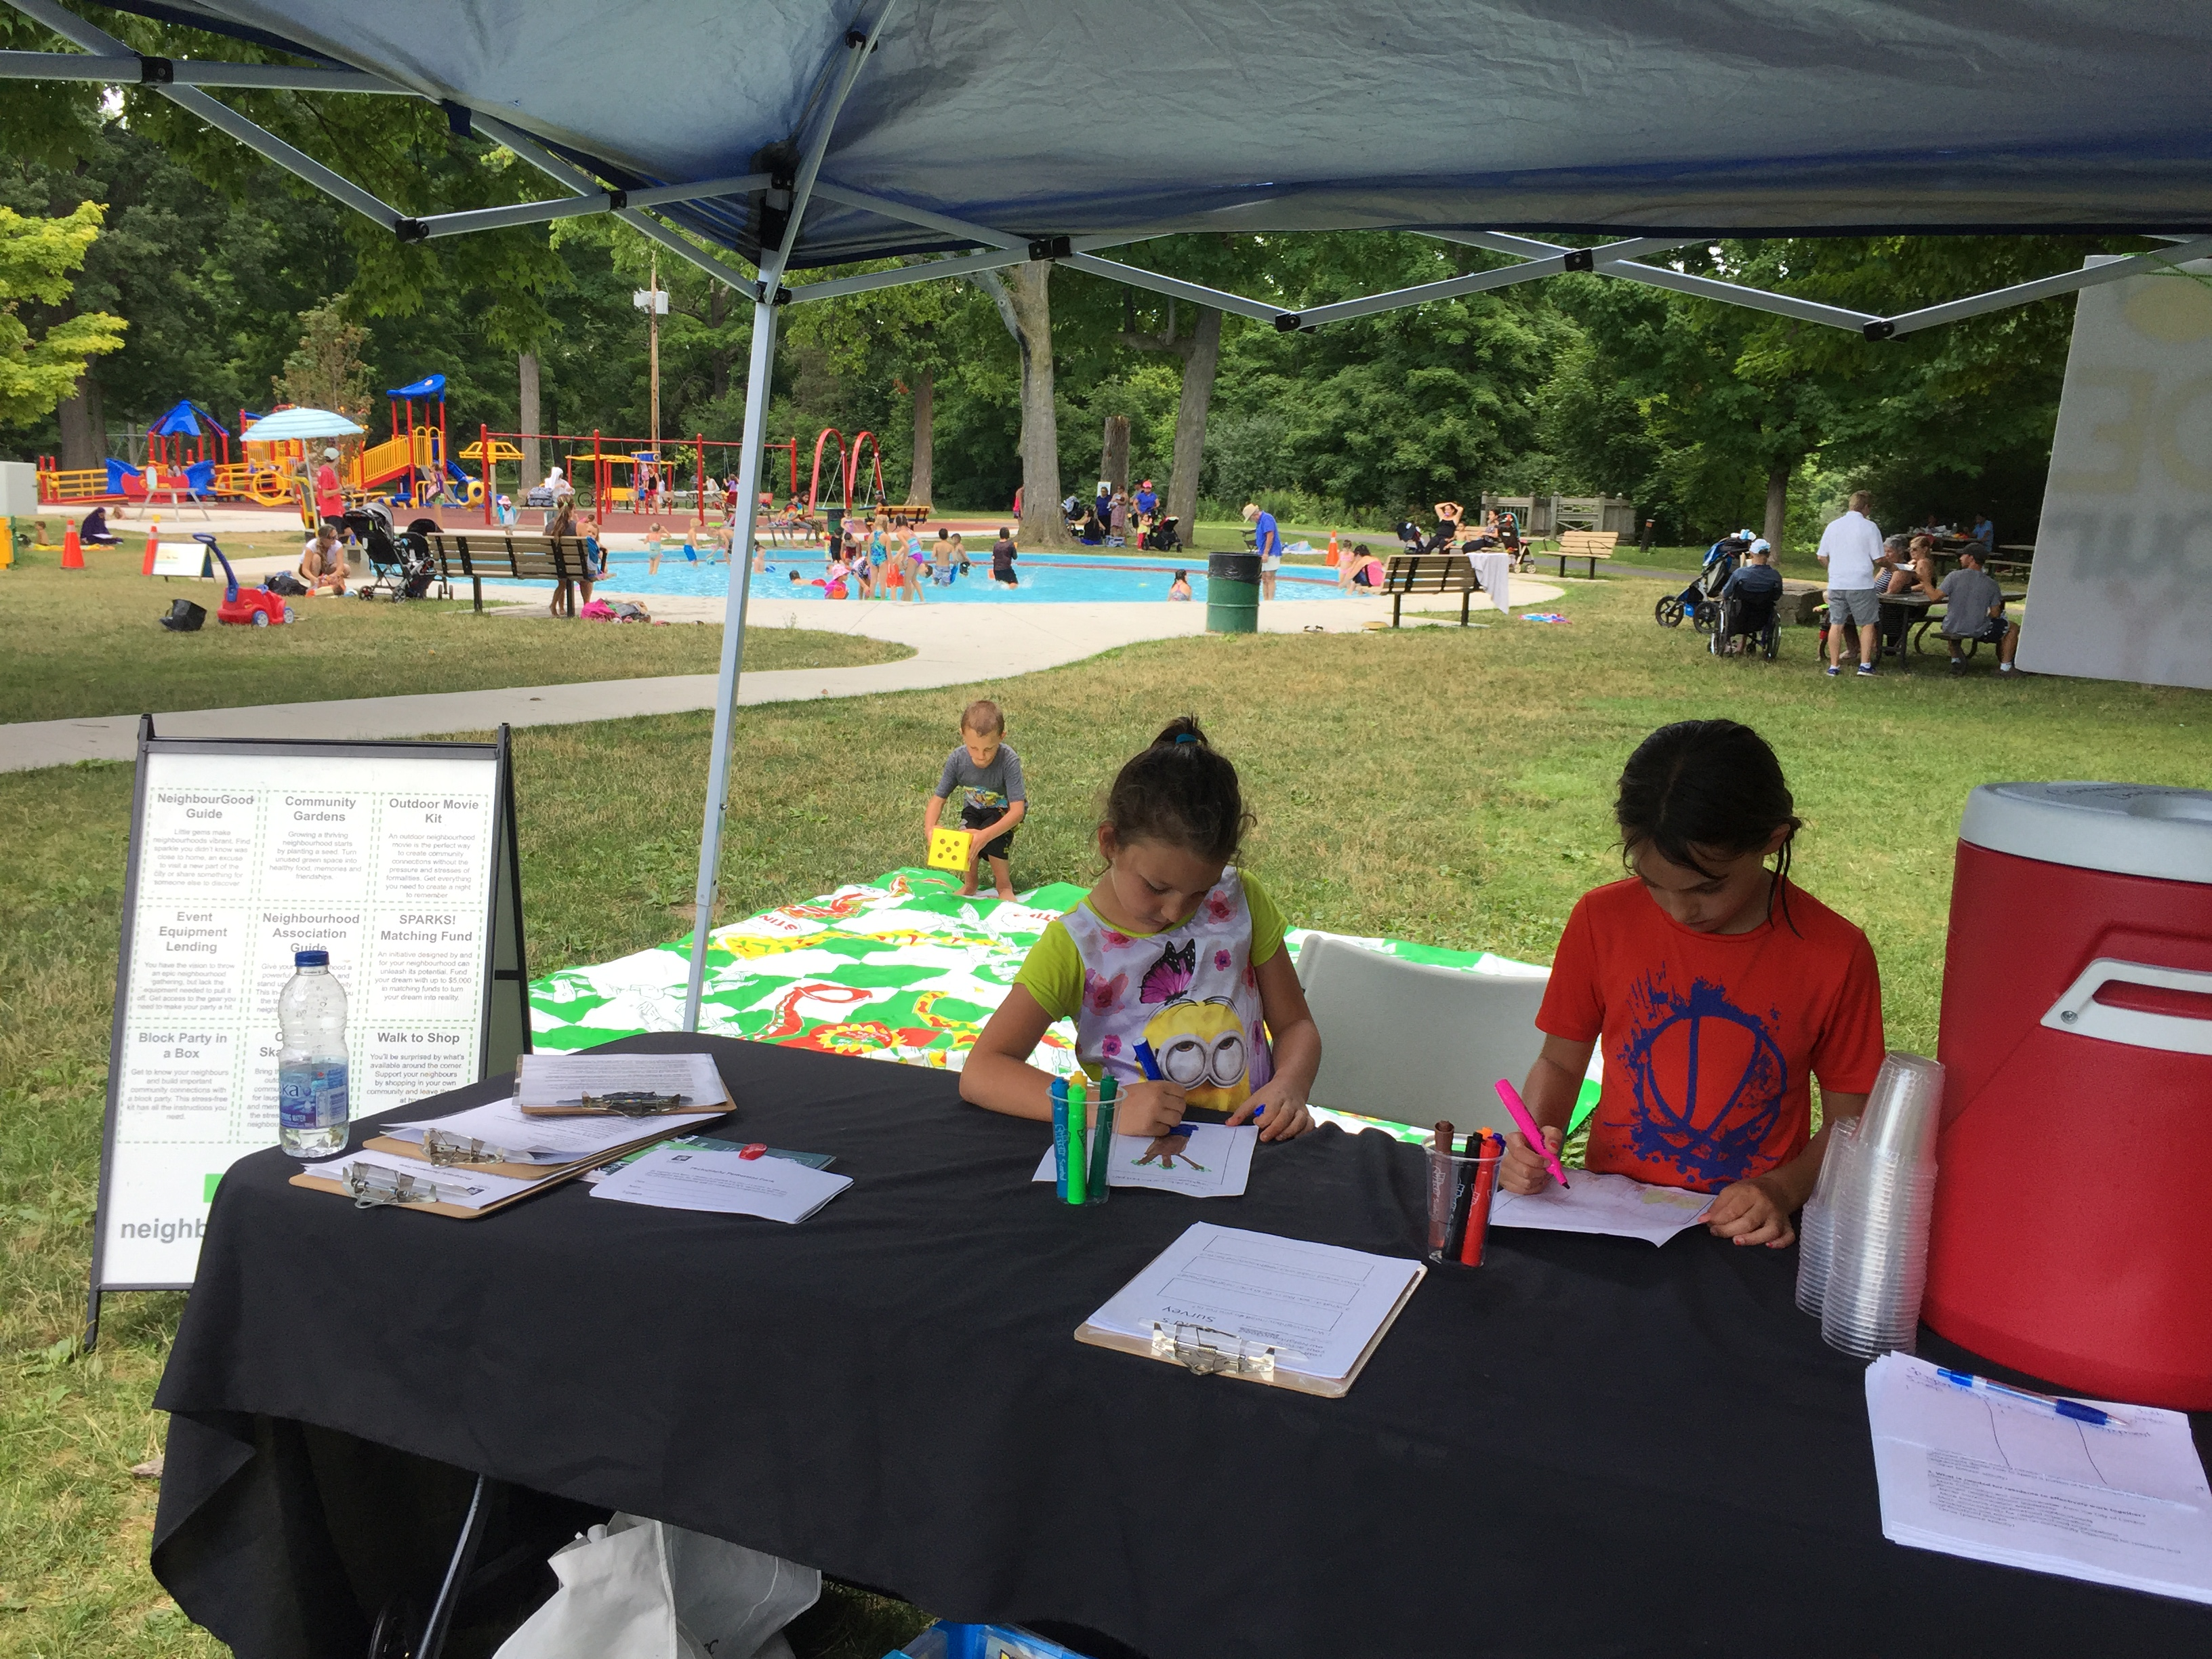 Kids at Springbank Park filling out the Kids Survey and playing Snakes and Ladders.